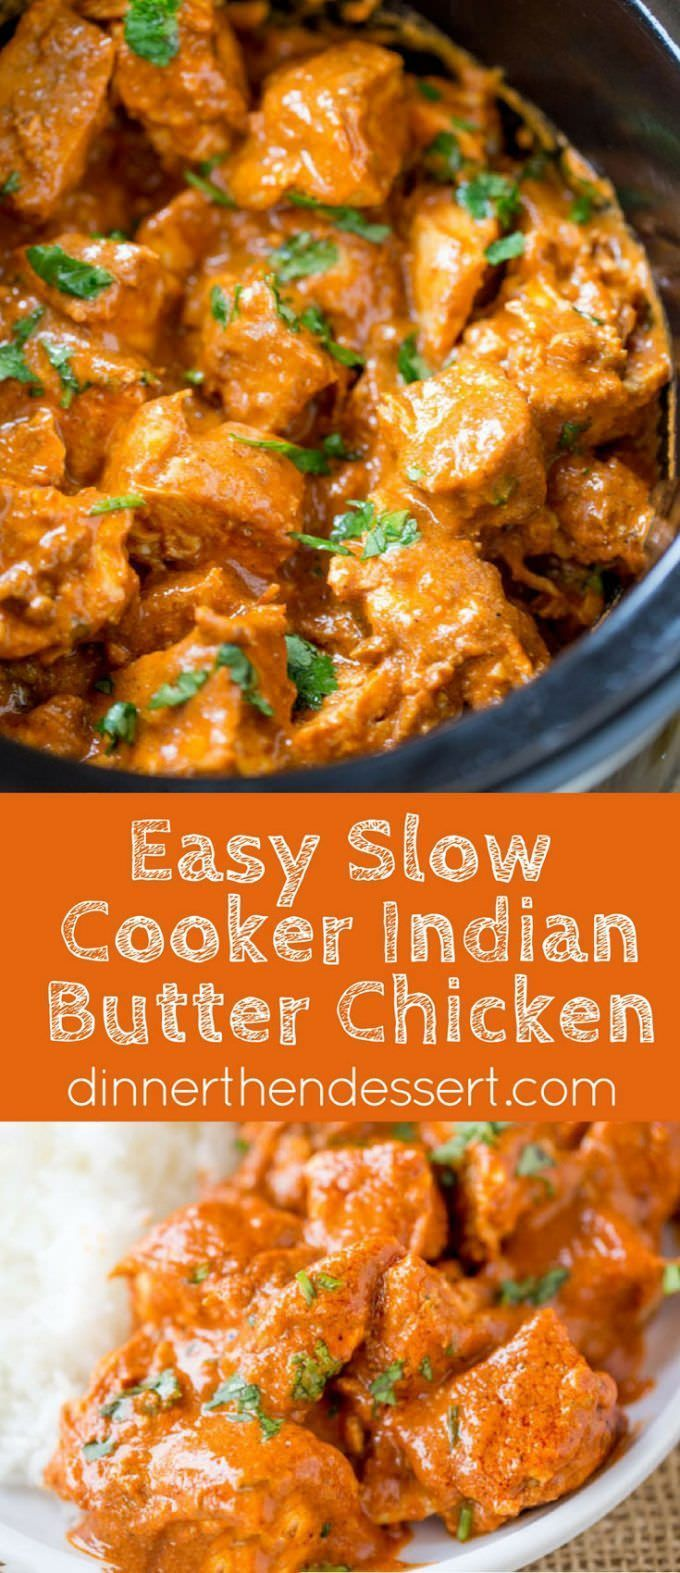 This Slow Cooker Indian Butter Chicken Recipe Will Bring Oh My Goodness Moment In Your Home So Creamy Deep Flavored And Rezepte Mahlzeit Butter Huhn Rezept